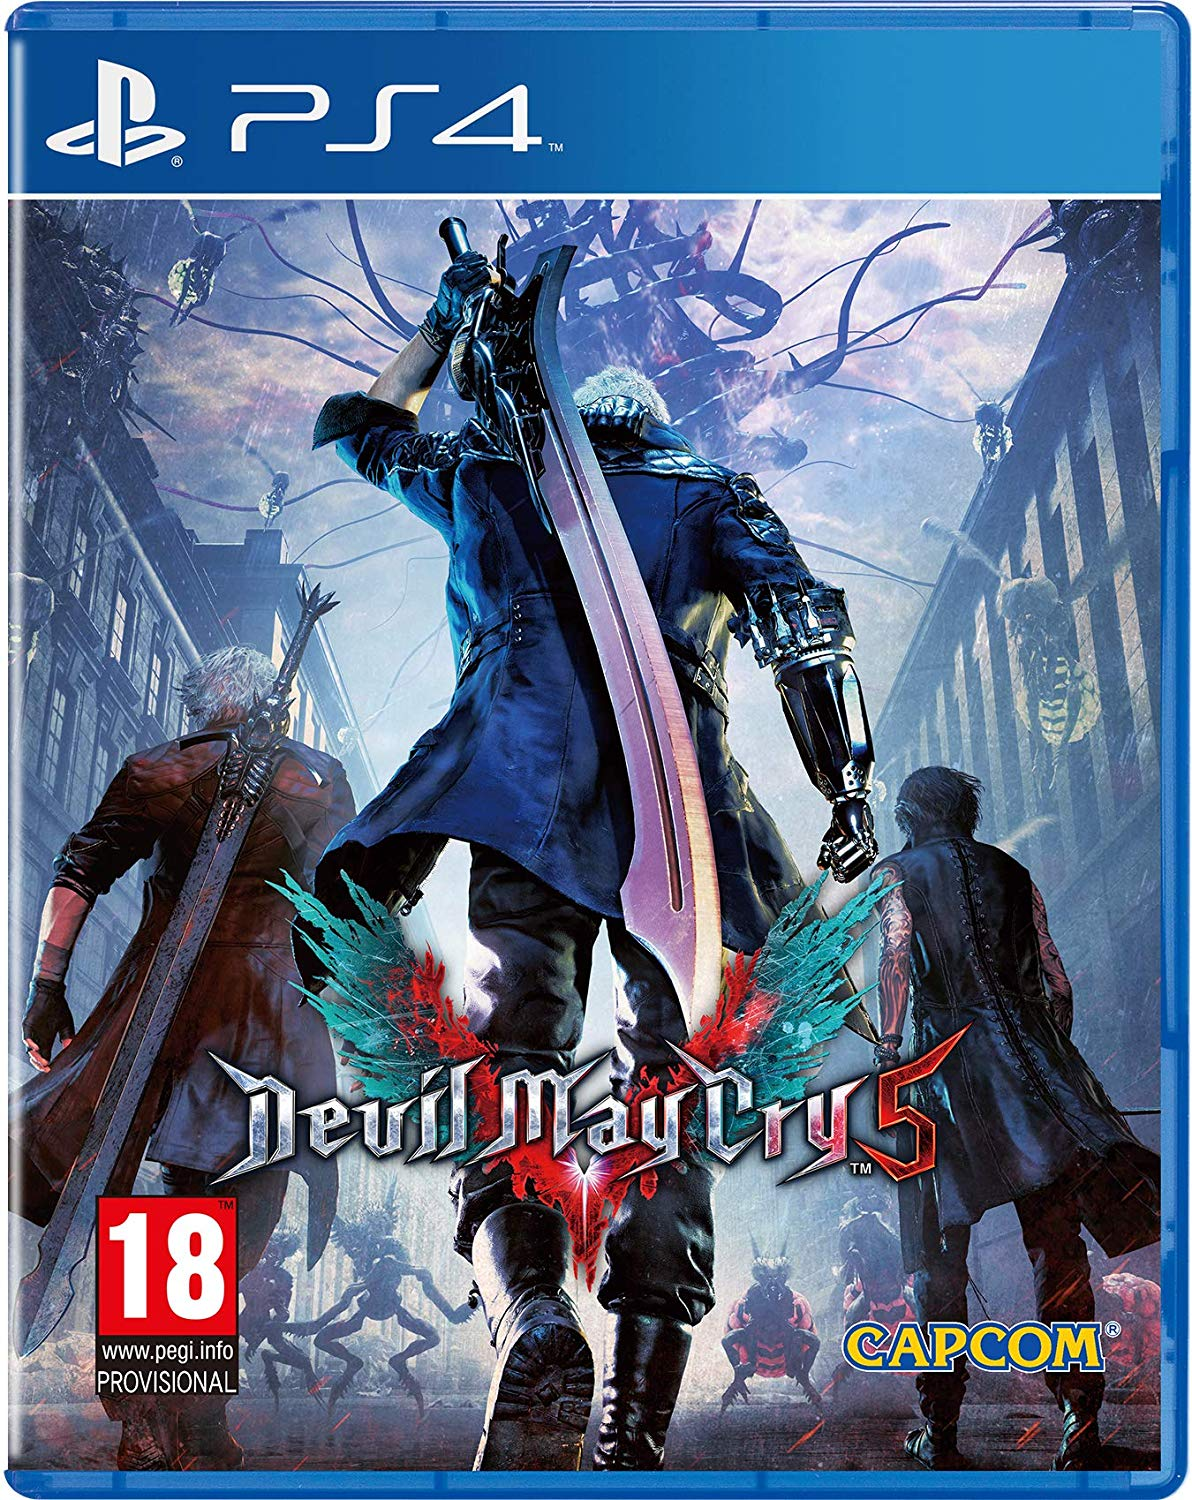 Devil May Cry 5 PS4, PS4, DVDMEGASTORE, DVDMEGASTORE